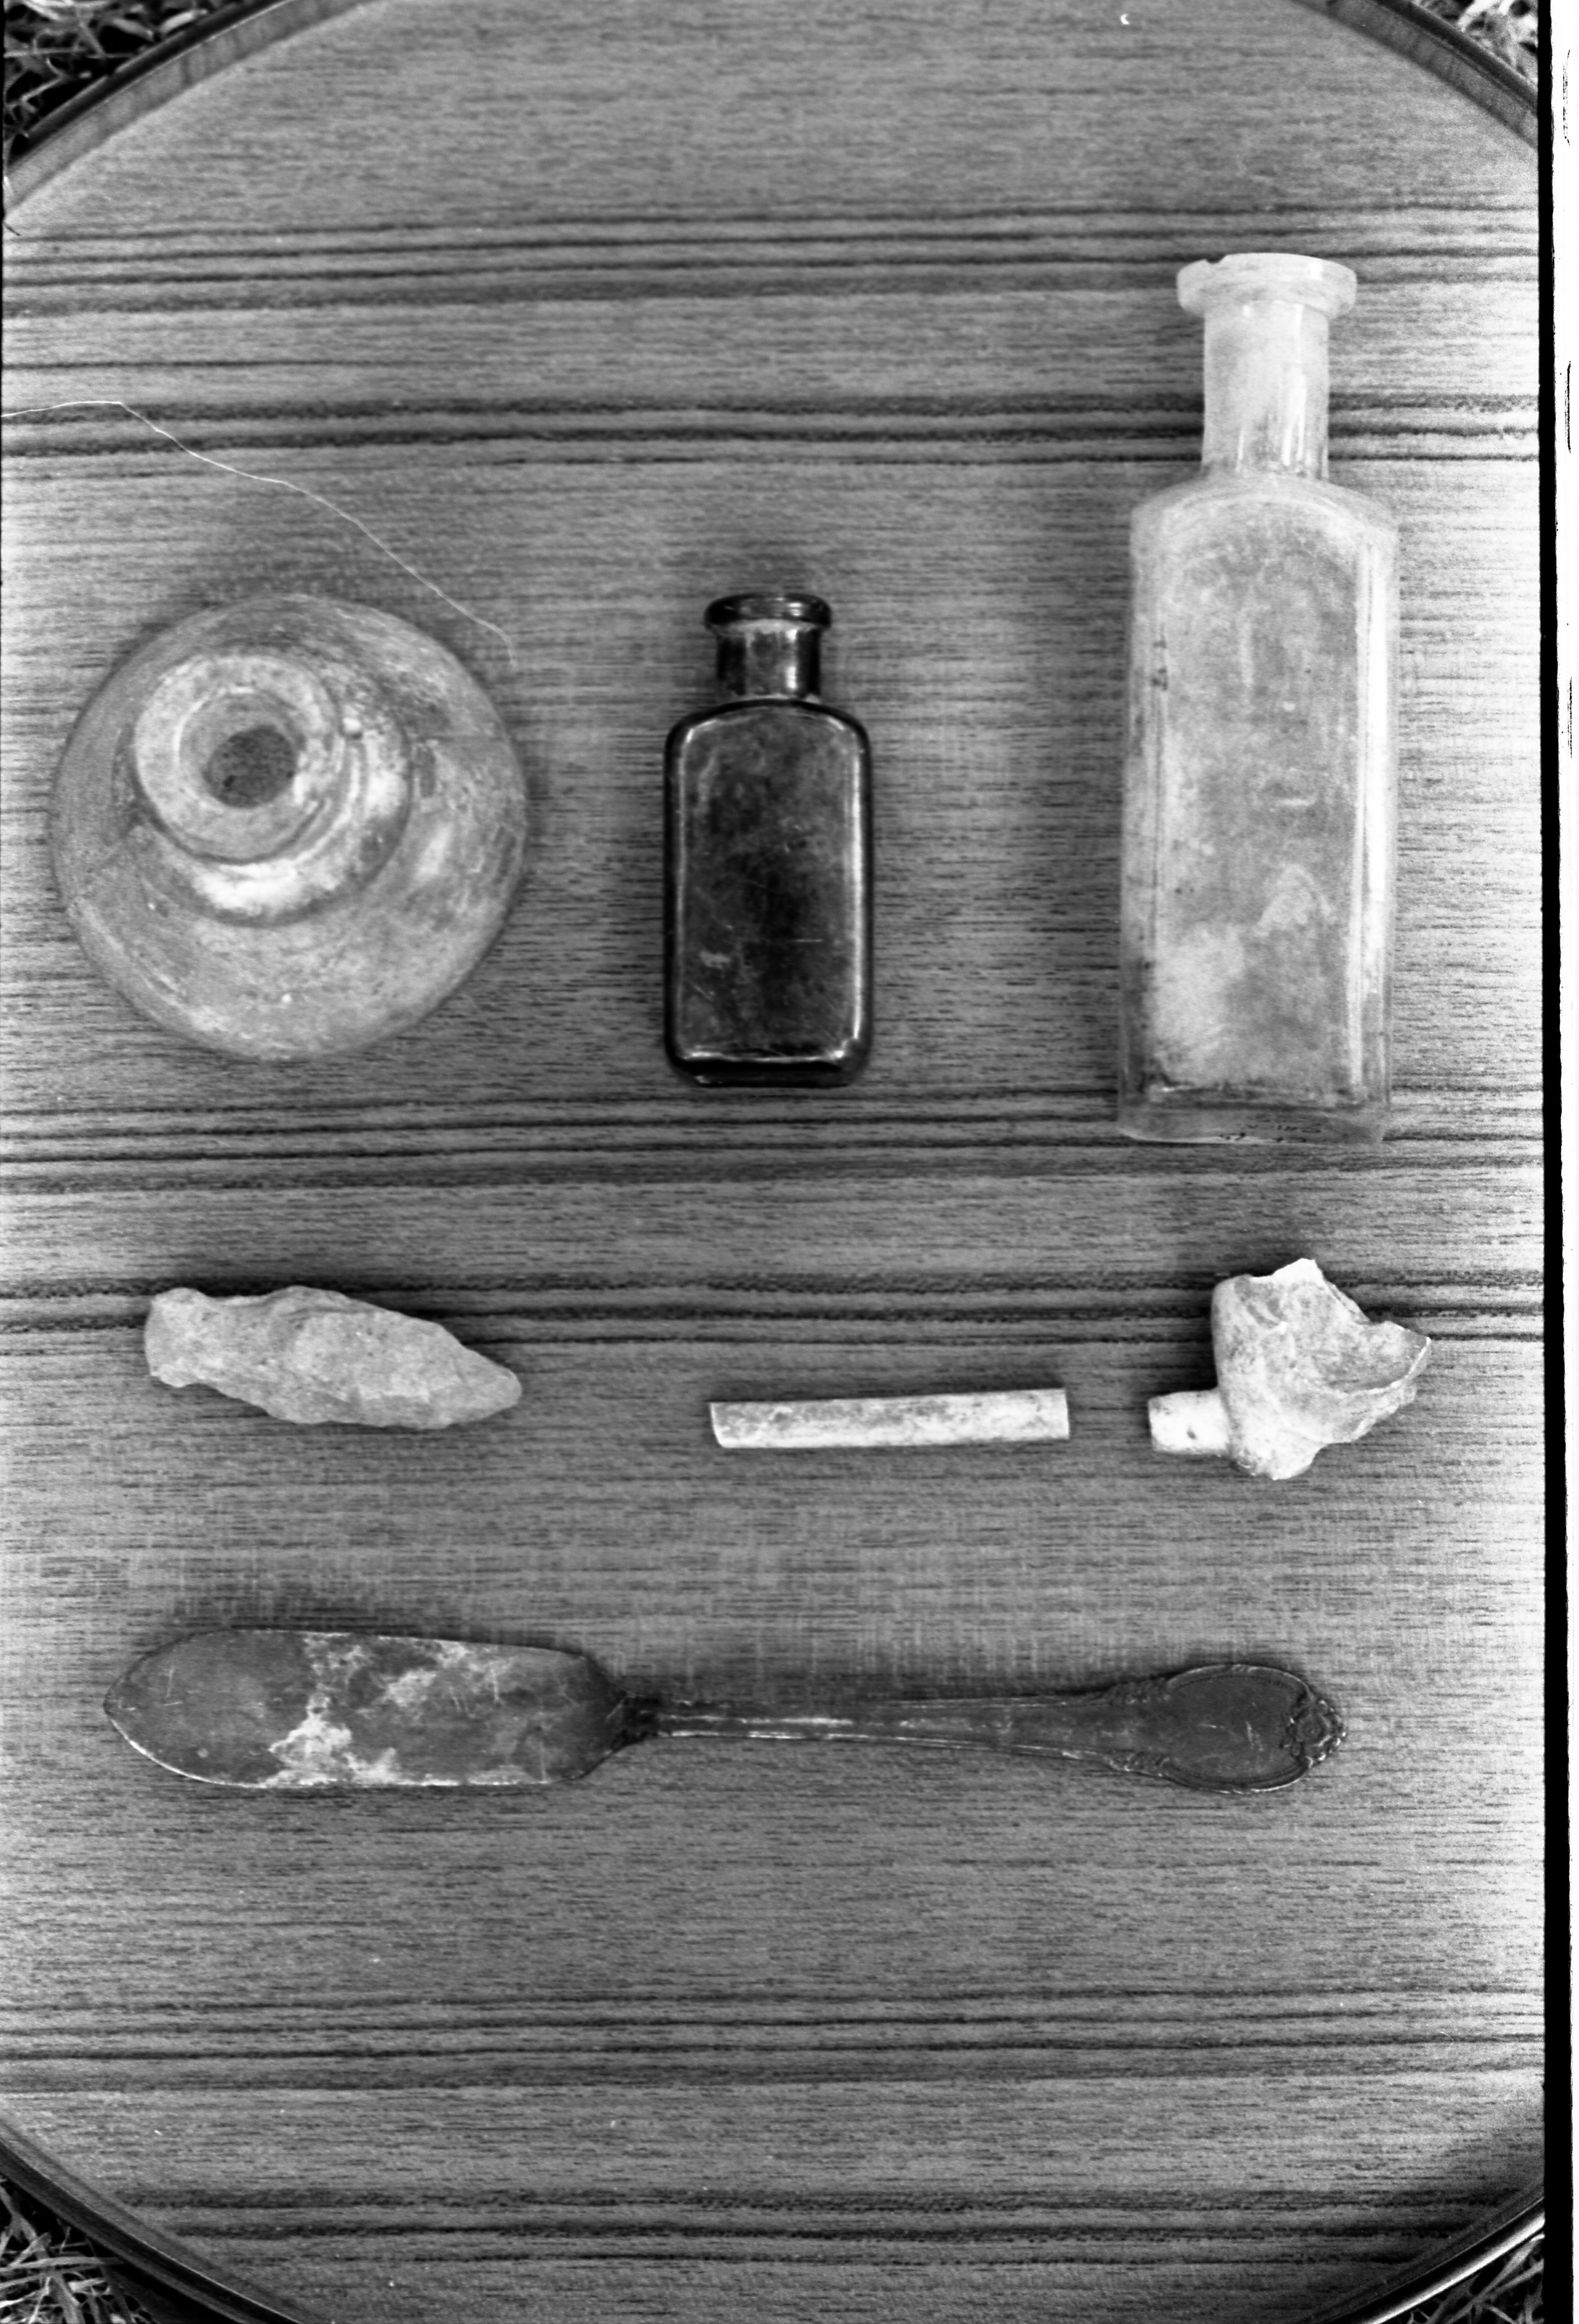 Artifacts Found At An Excavation Site On Cobblestone Farms, August 1, 1975 image